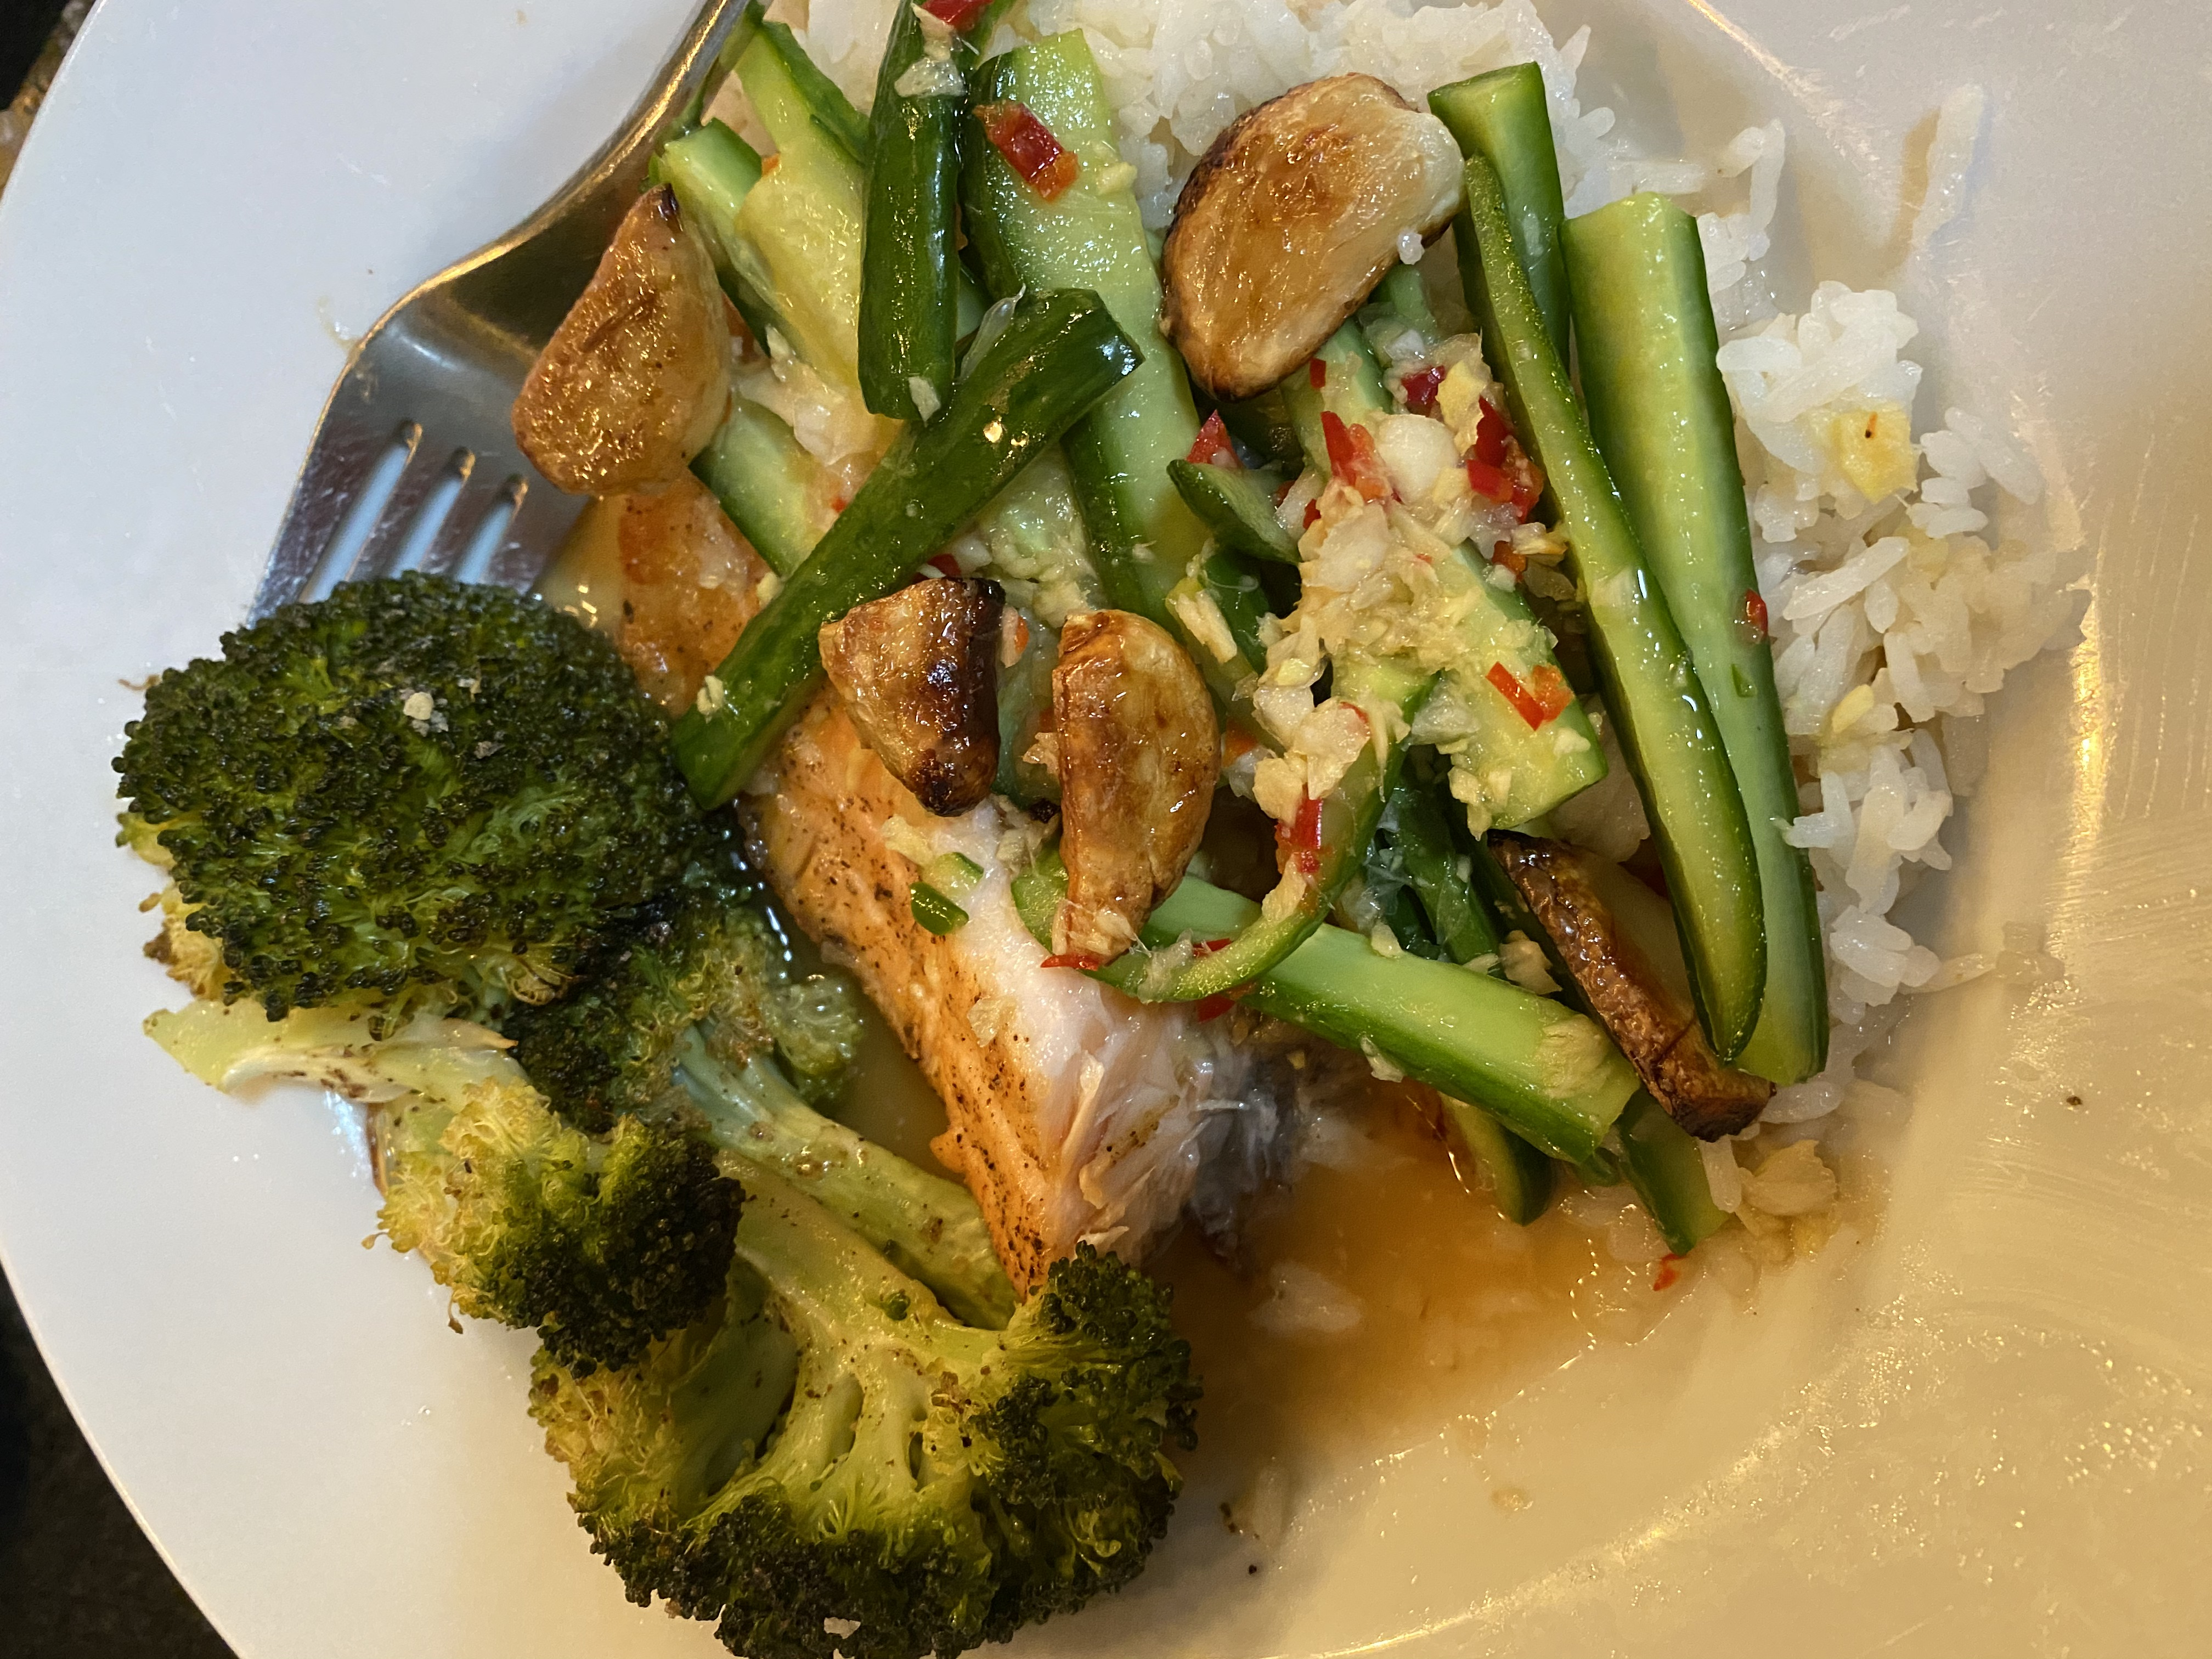 Half-eaten Salmon Rice Bowl with Ginger-Lime Sauce with a side of broccoli.